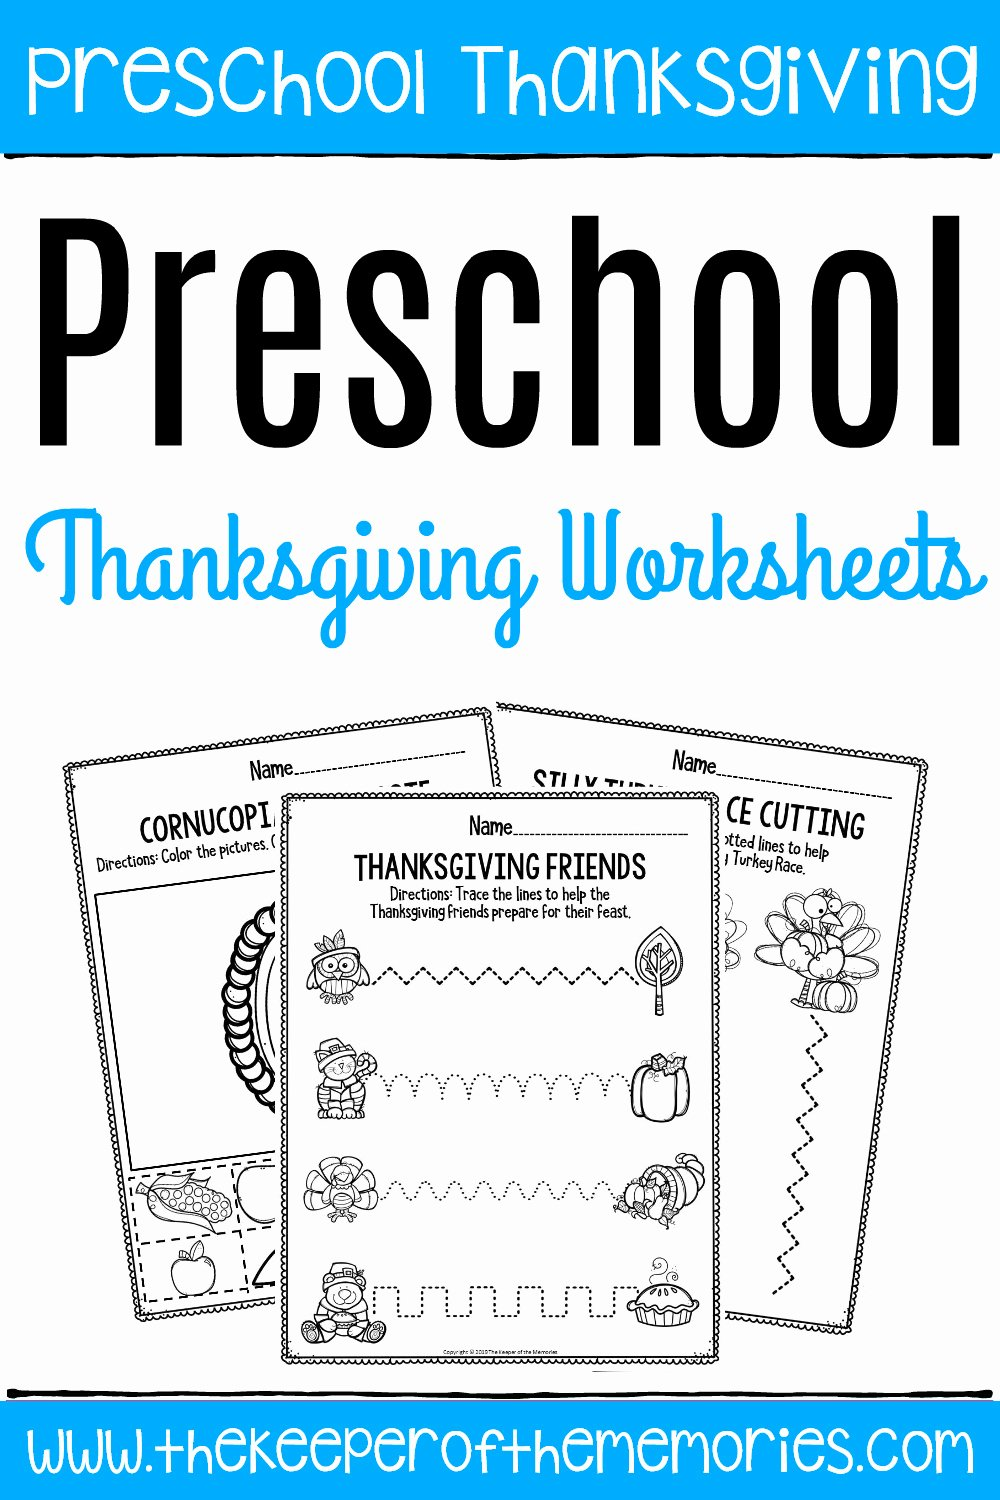 Thankful Worksheets for Preschoolers Lovely Printable Fine Motor Thanksgiving Preschool Worksheets